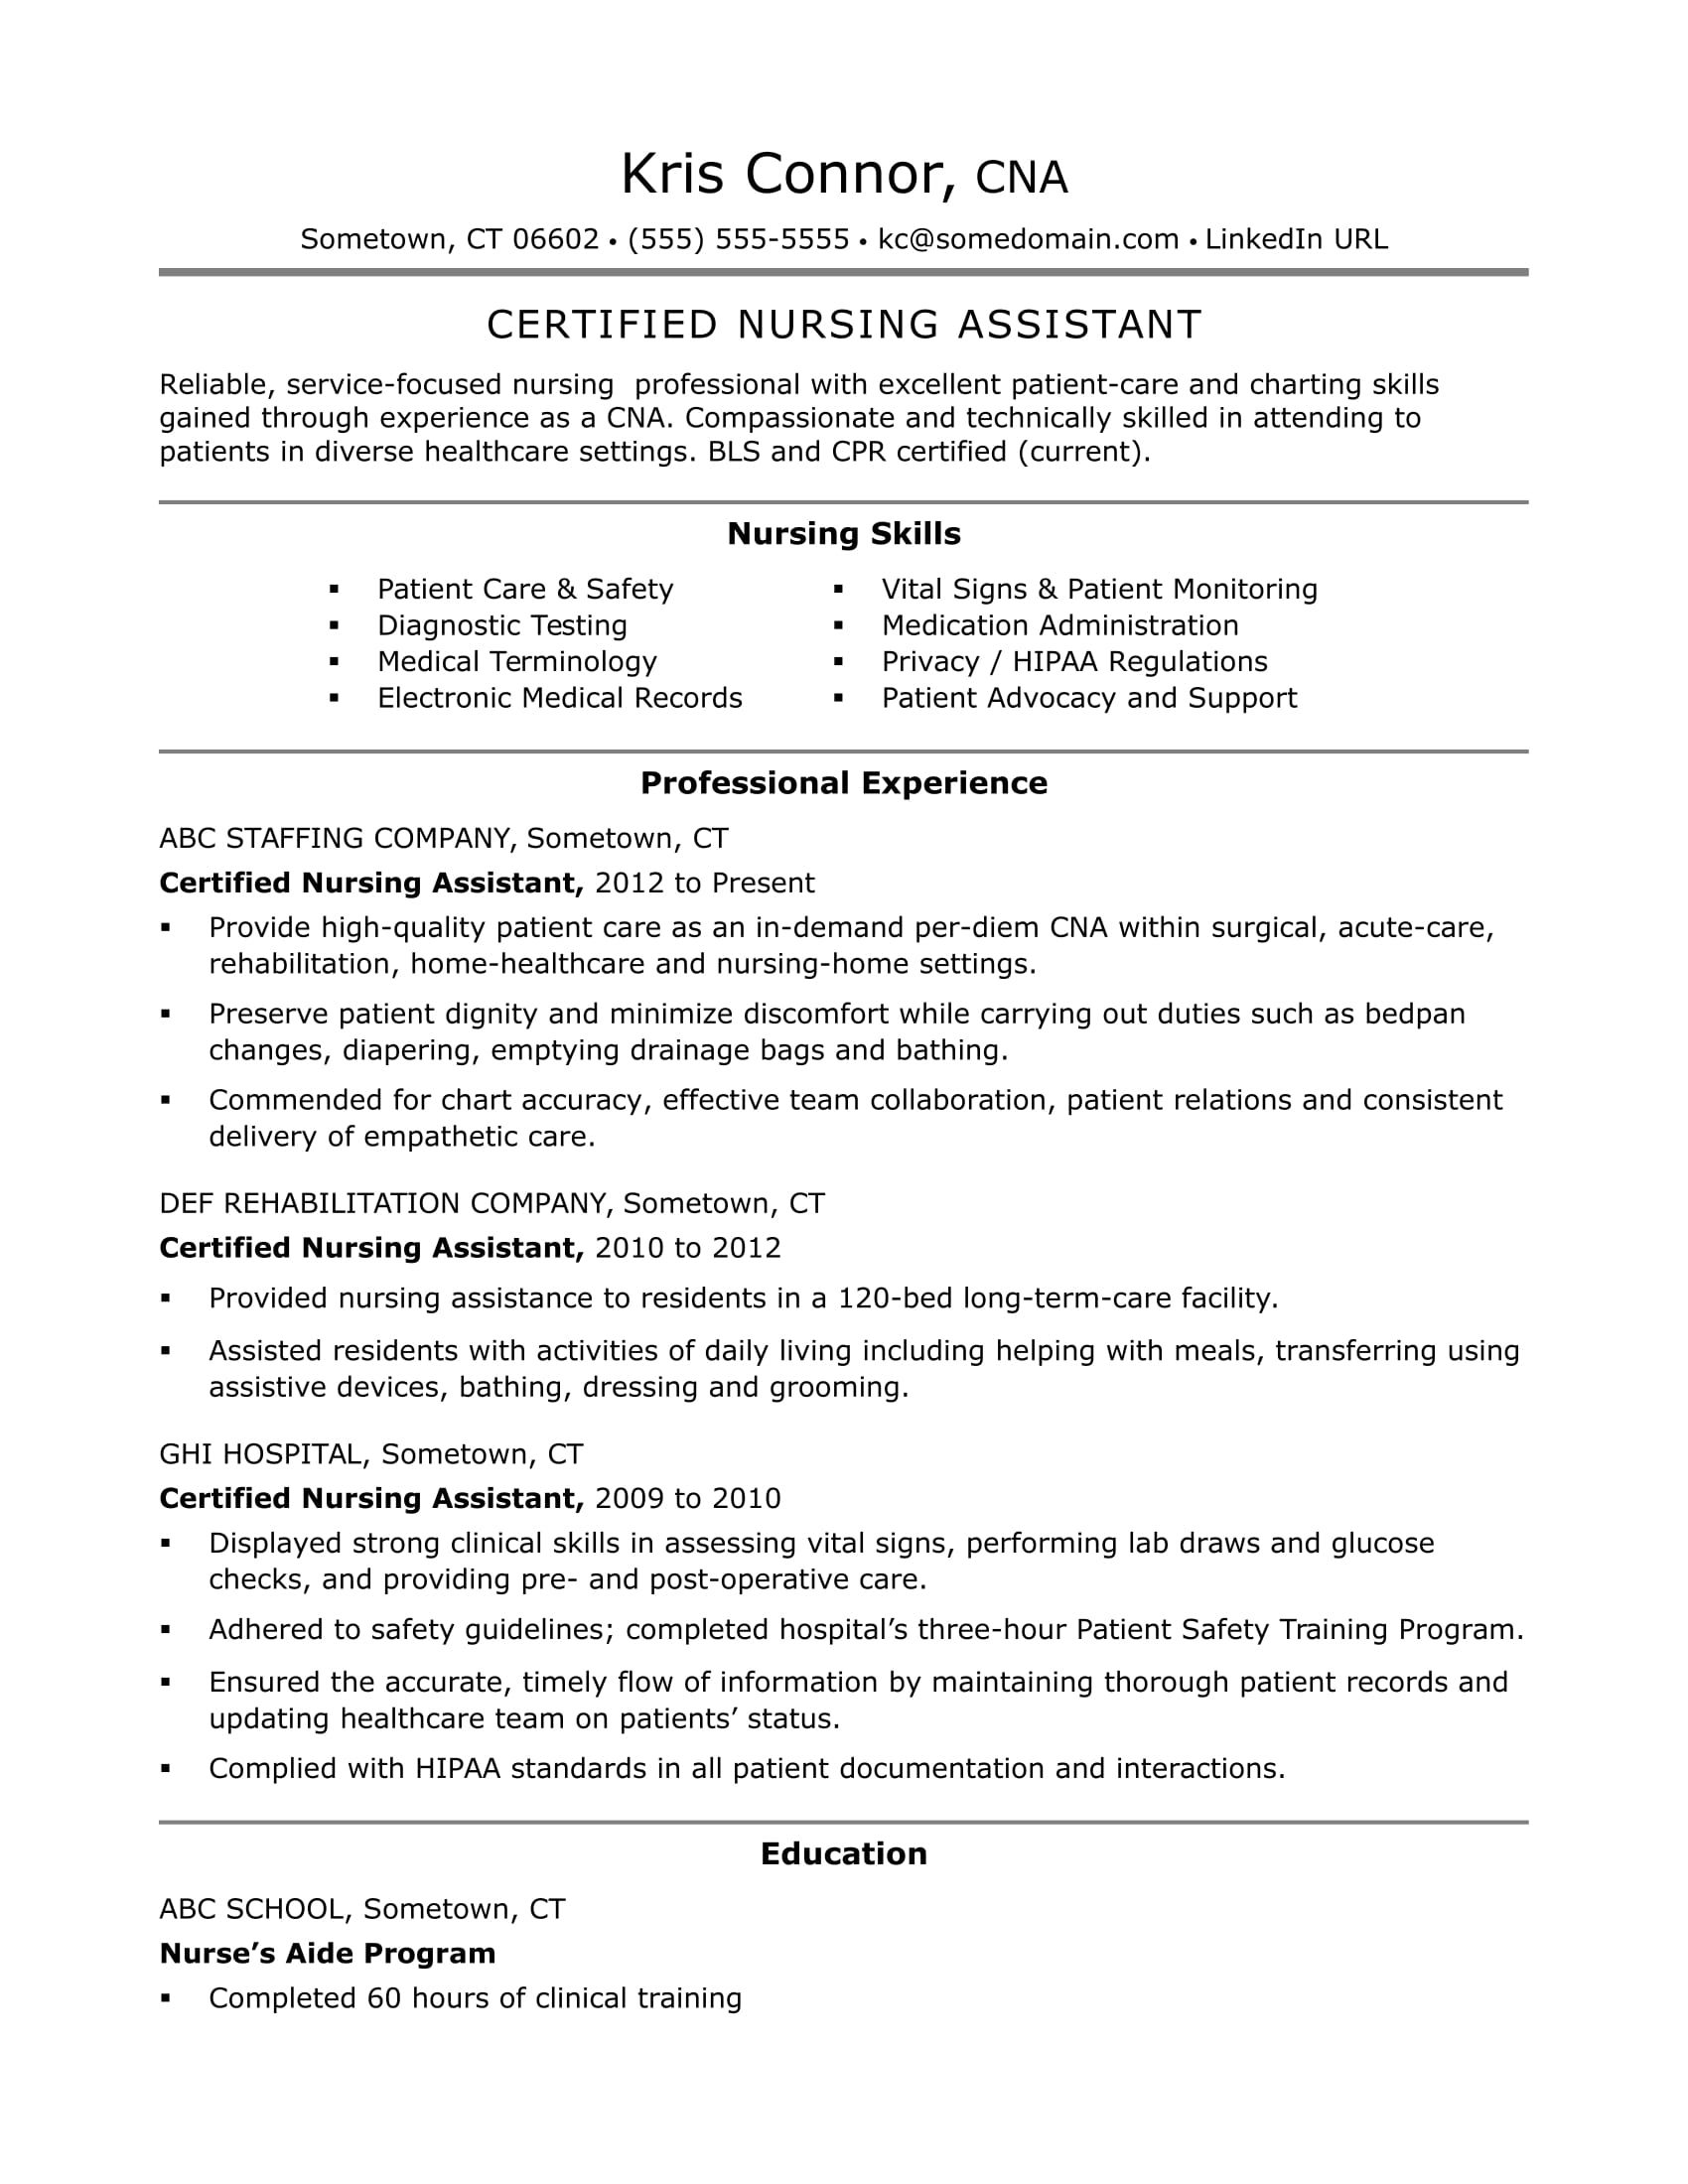 cna resume example - Sample Effective Resume